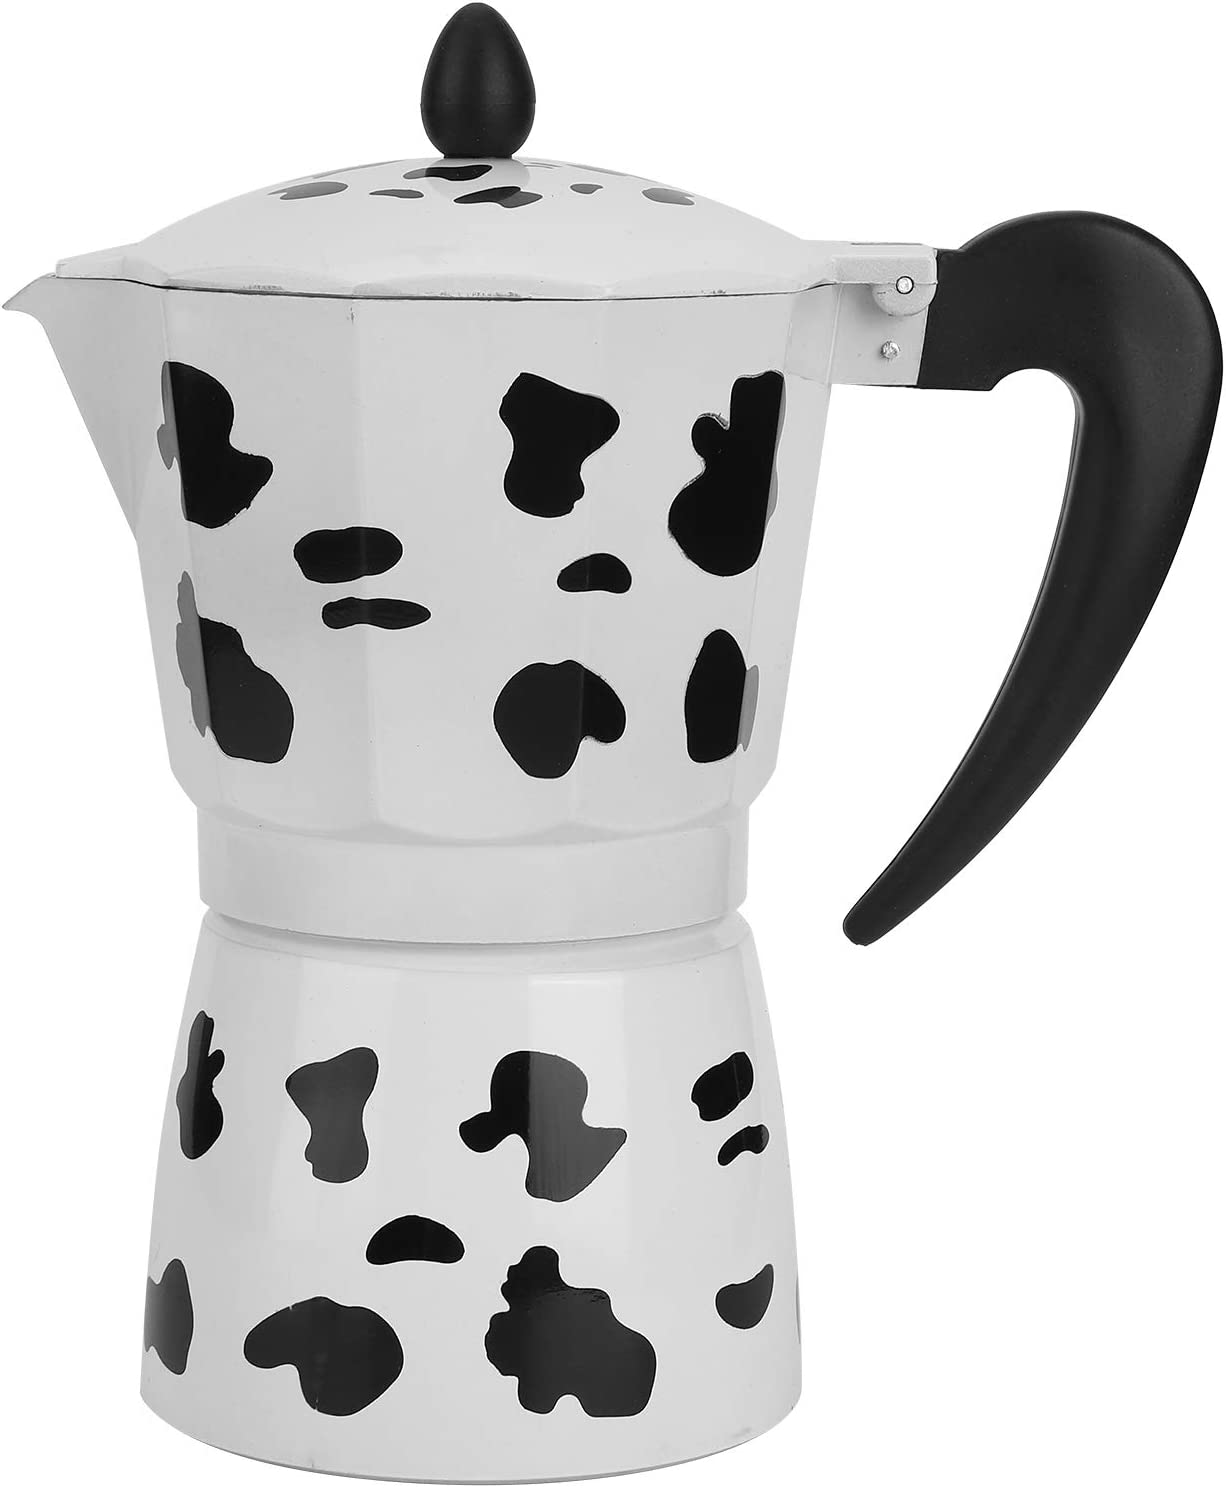 Espresso Maker Stove Top, Milk Cow Color Aluminum Stovetop Espresso Moka Pots Coffee Pot 3cup 6cup 9cup Not for Induction Cooker Heating(6Cup)